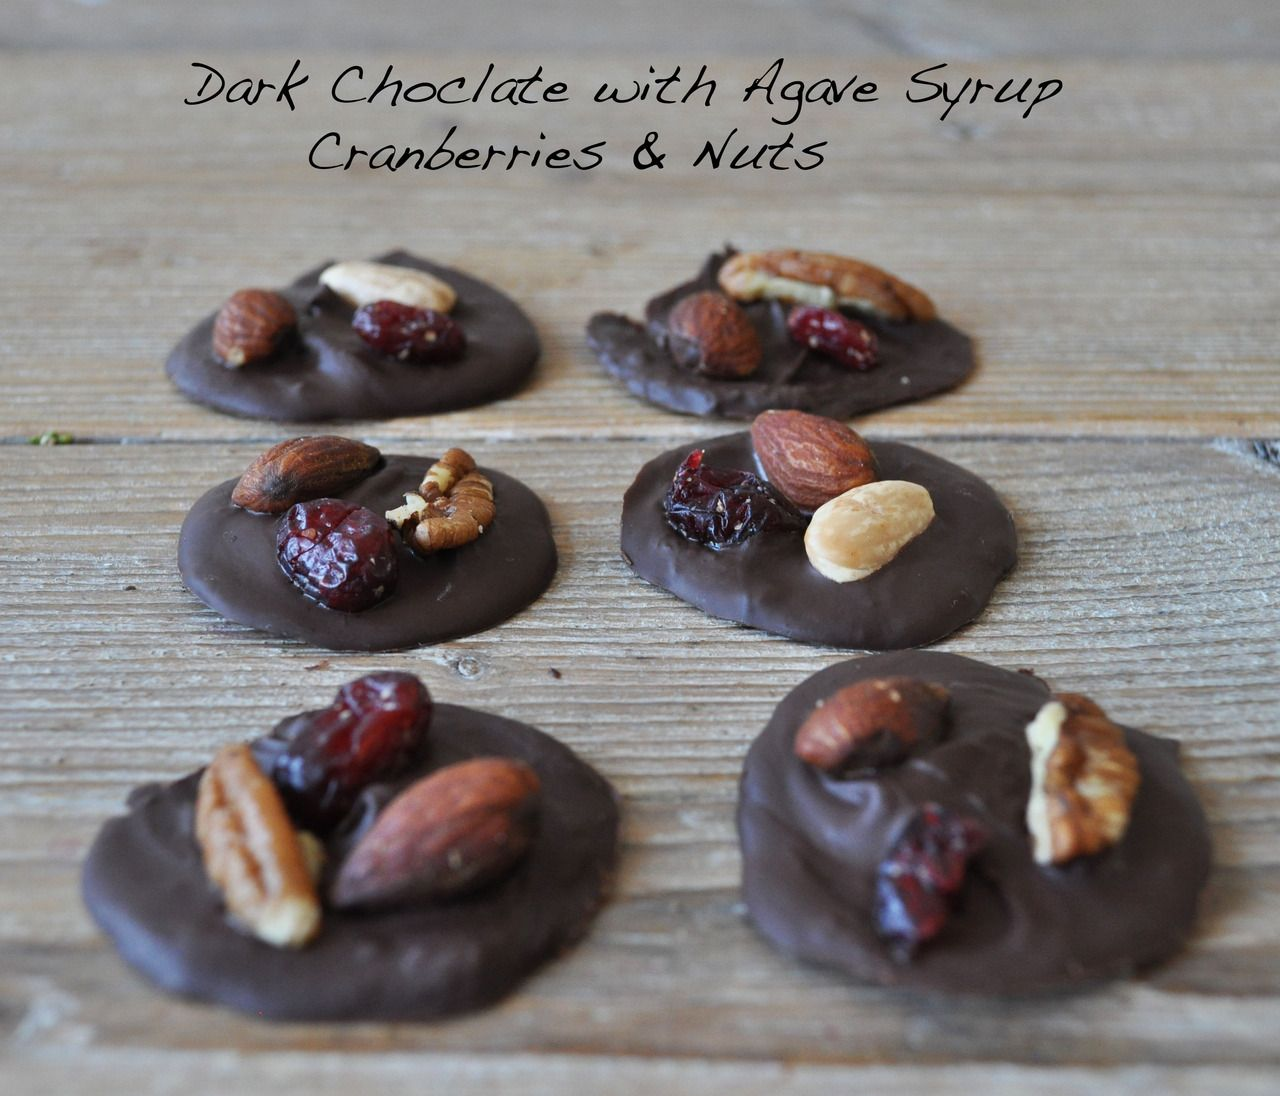 Dark Chocolate with Cranberries & Nuts